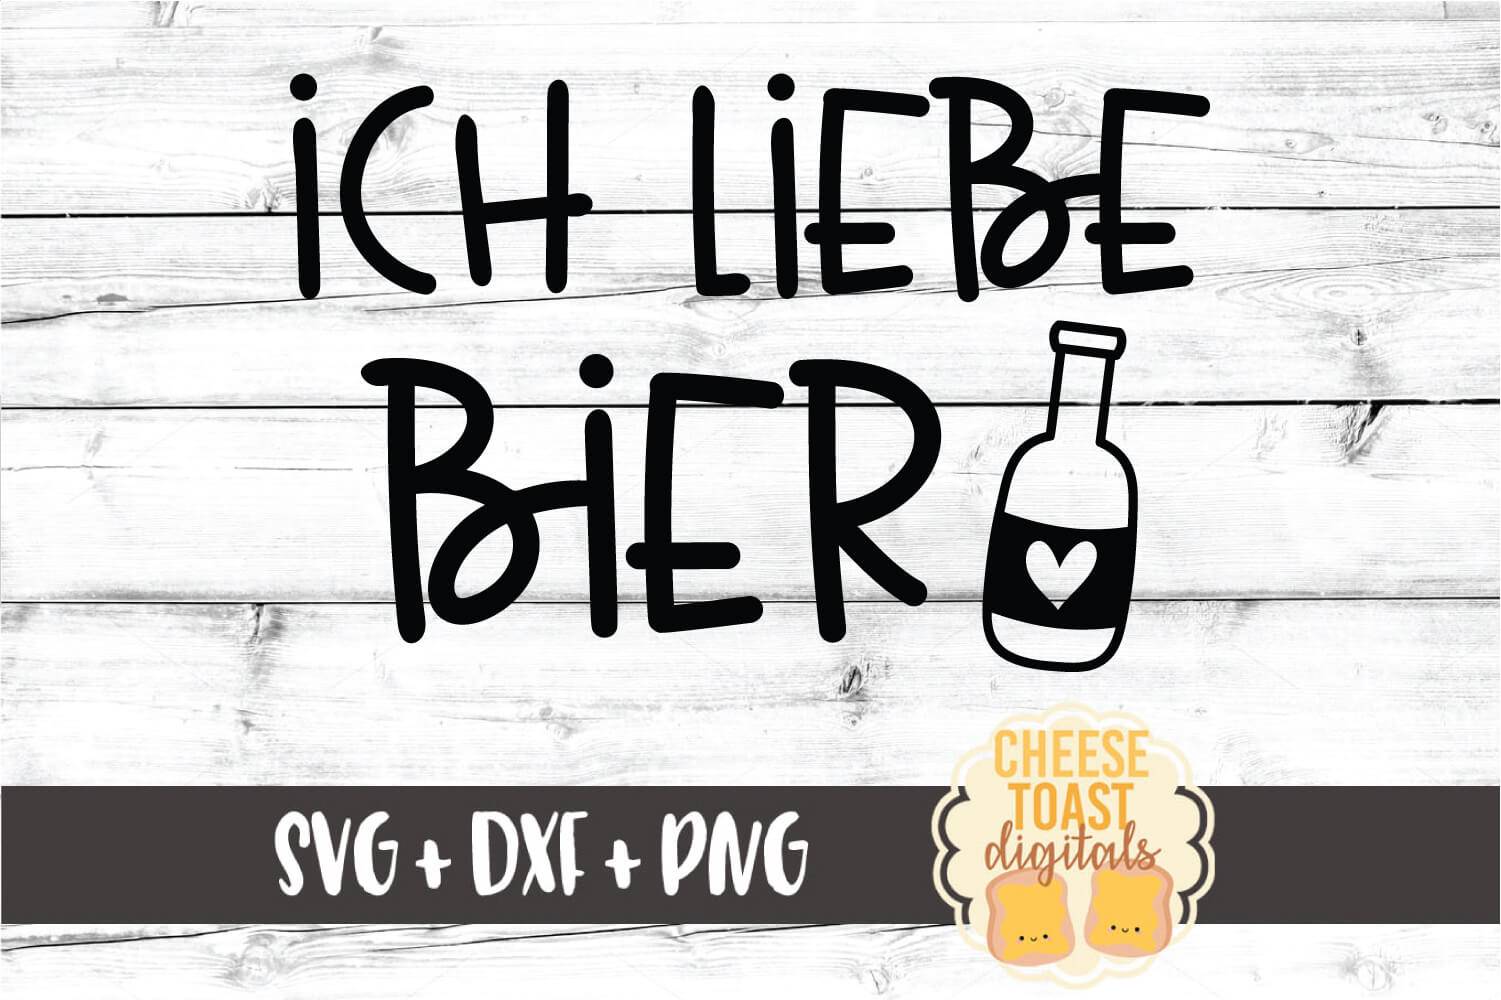 Ich Liebe Bier - Oktoberfest Beer SVG PNG DXF Cut Files example image 2